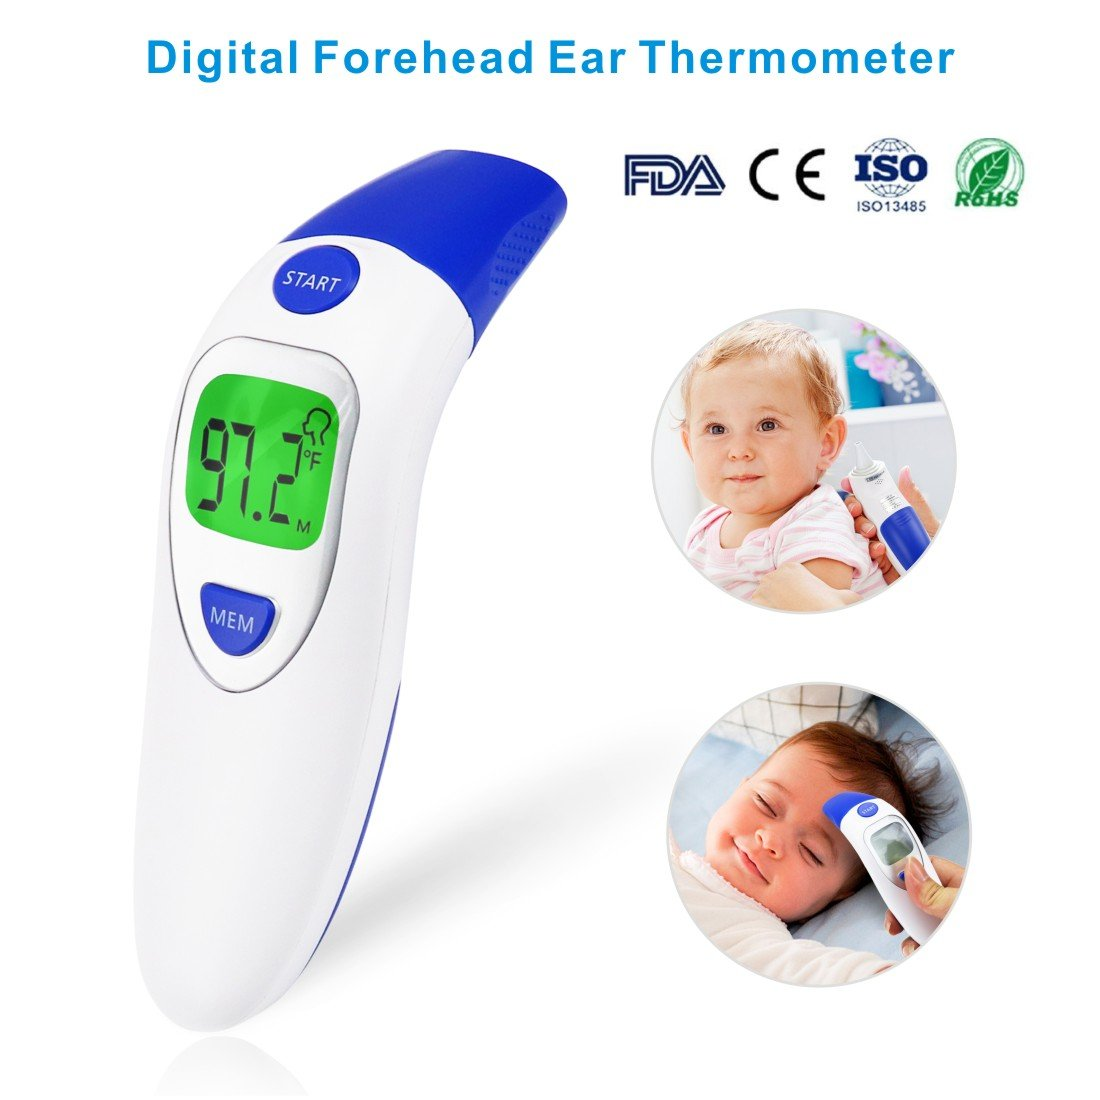 Idefair(TM) Digital Forehead Ear Thermometer Medical Infrared Clinical Body Object Measure Thermometer Accurate Instant Read For Toddler Infant Kids Children Adult with Fever Warning